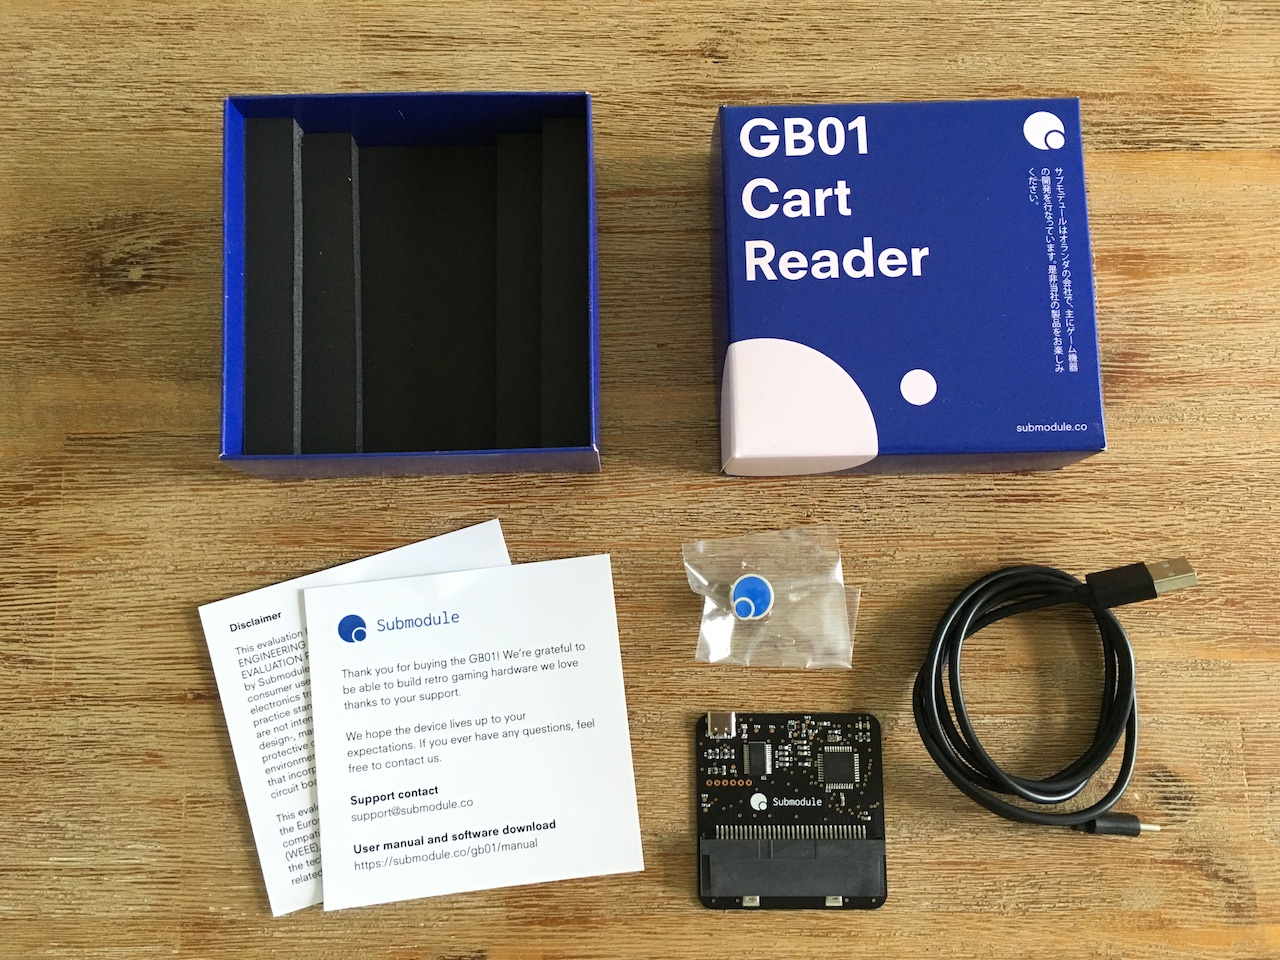 The content of the GB01 Cart Reader box layed out on a table